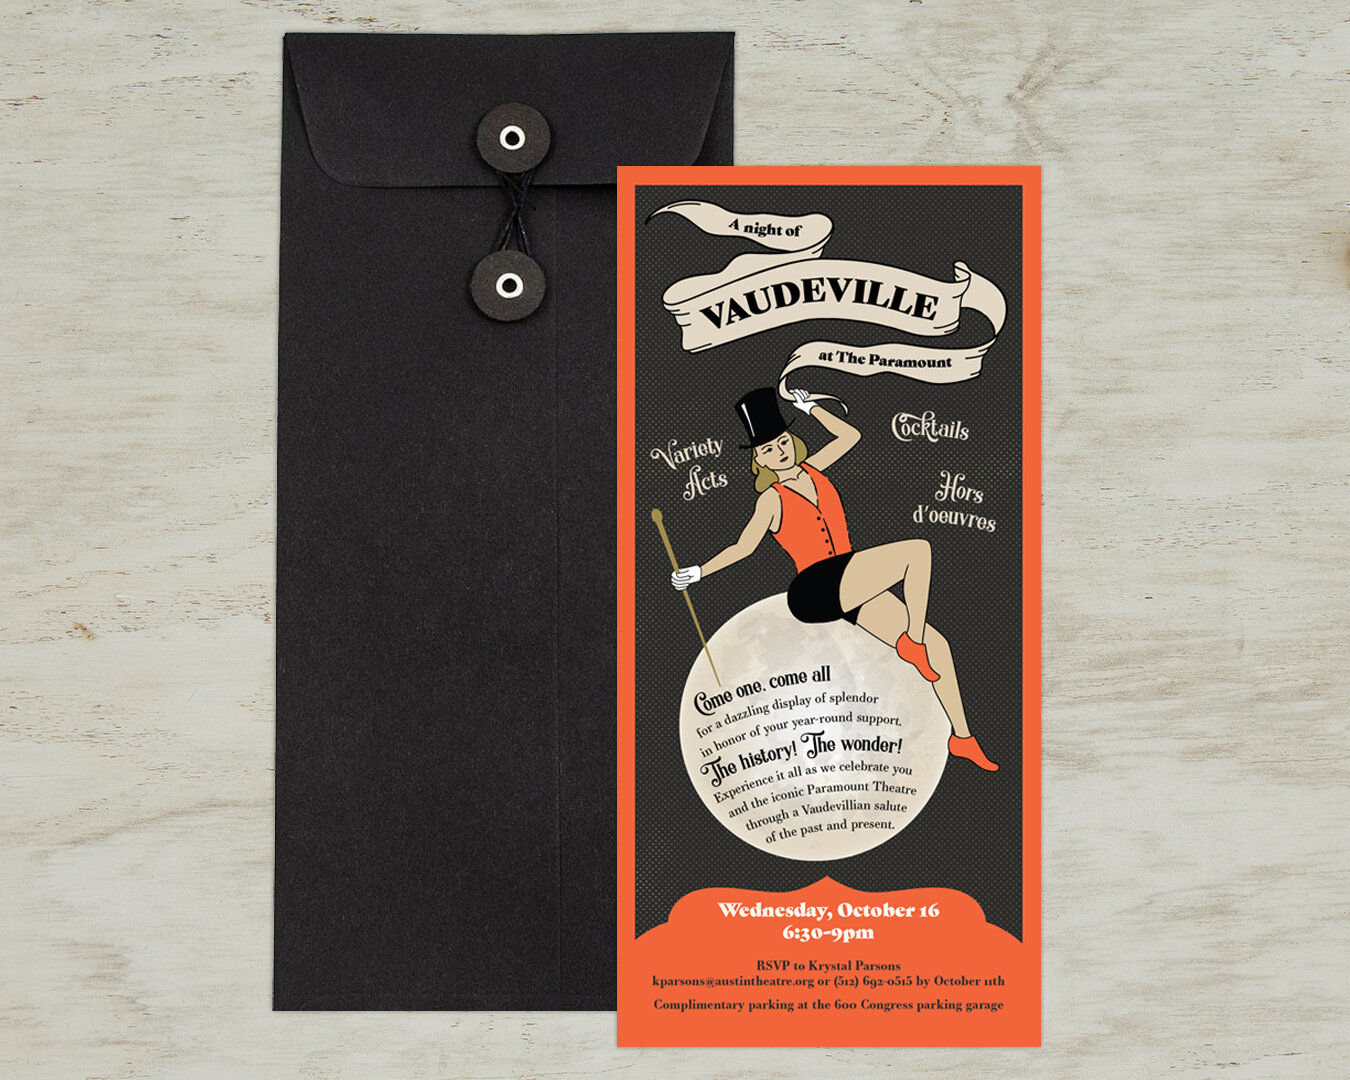 Custom invitation designed for a donor event at The Paramount.